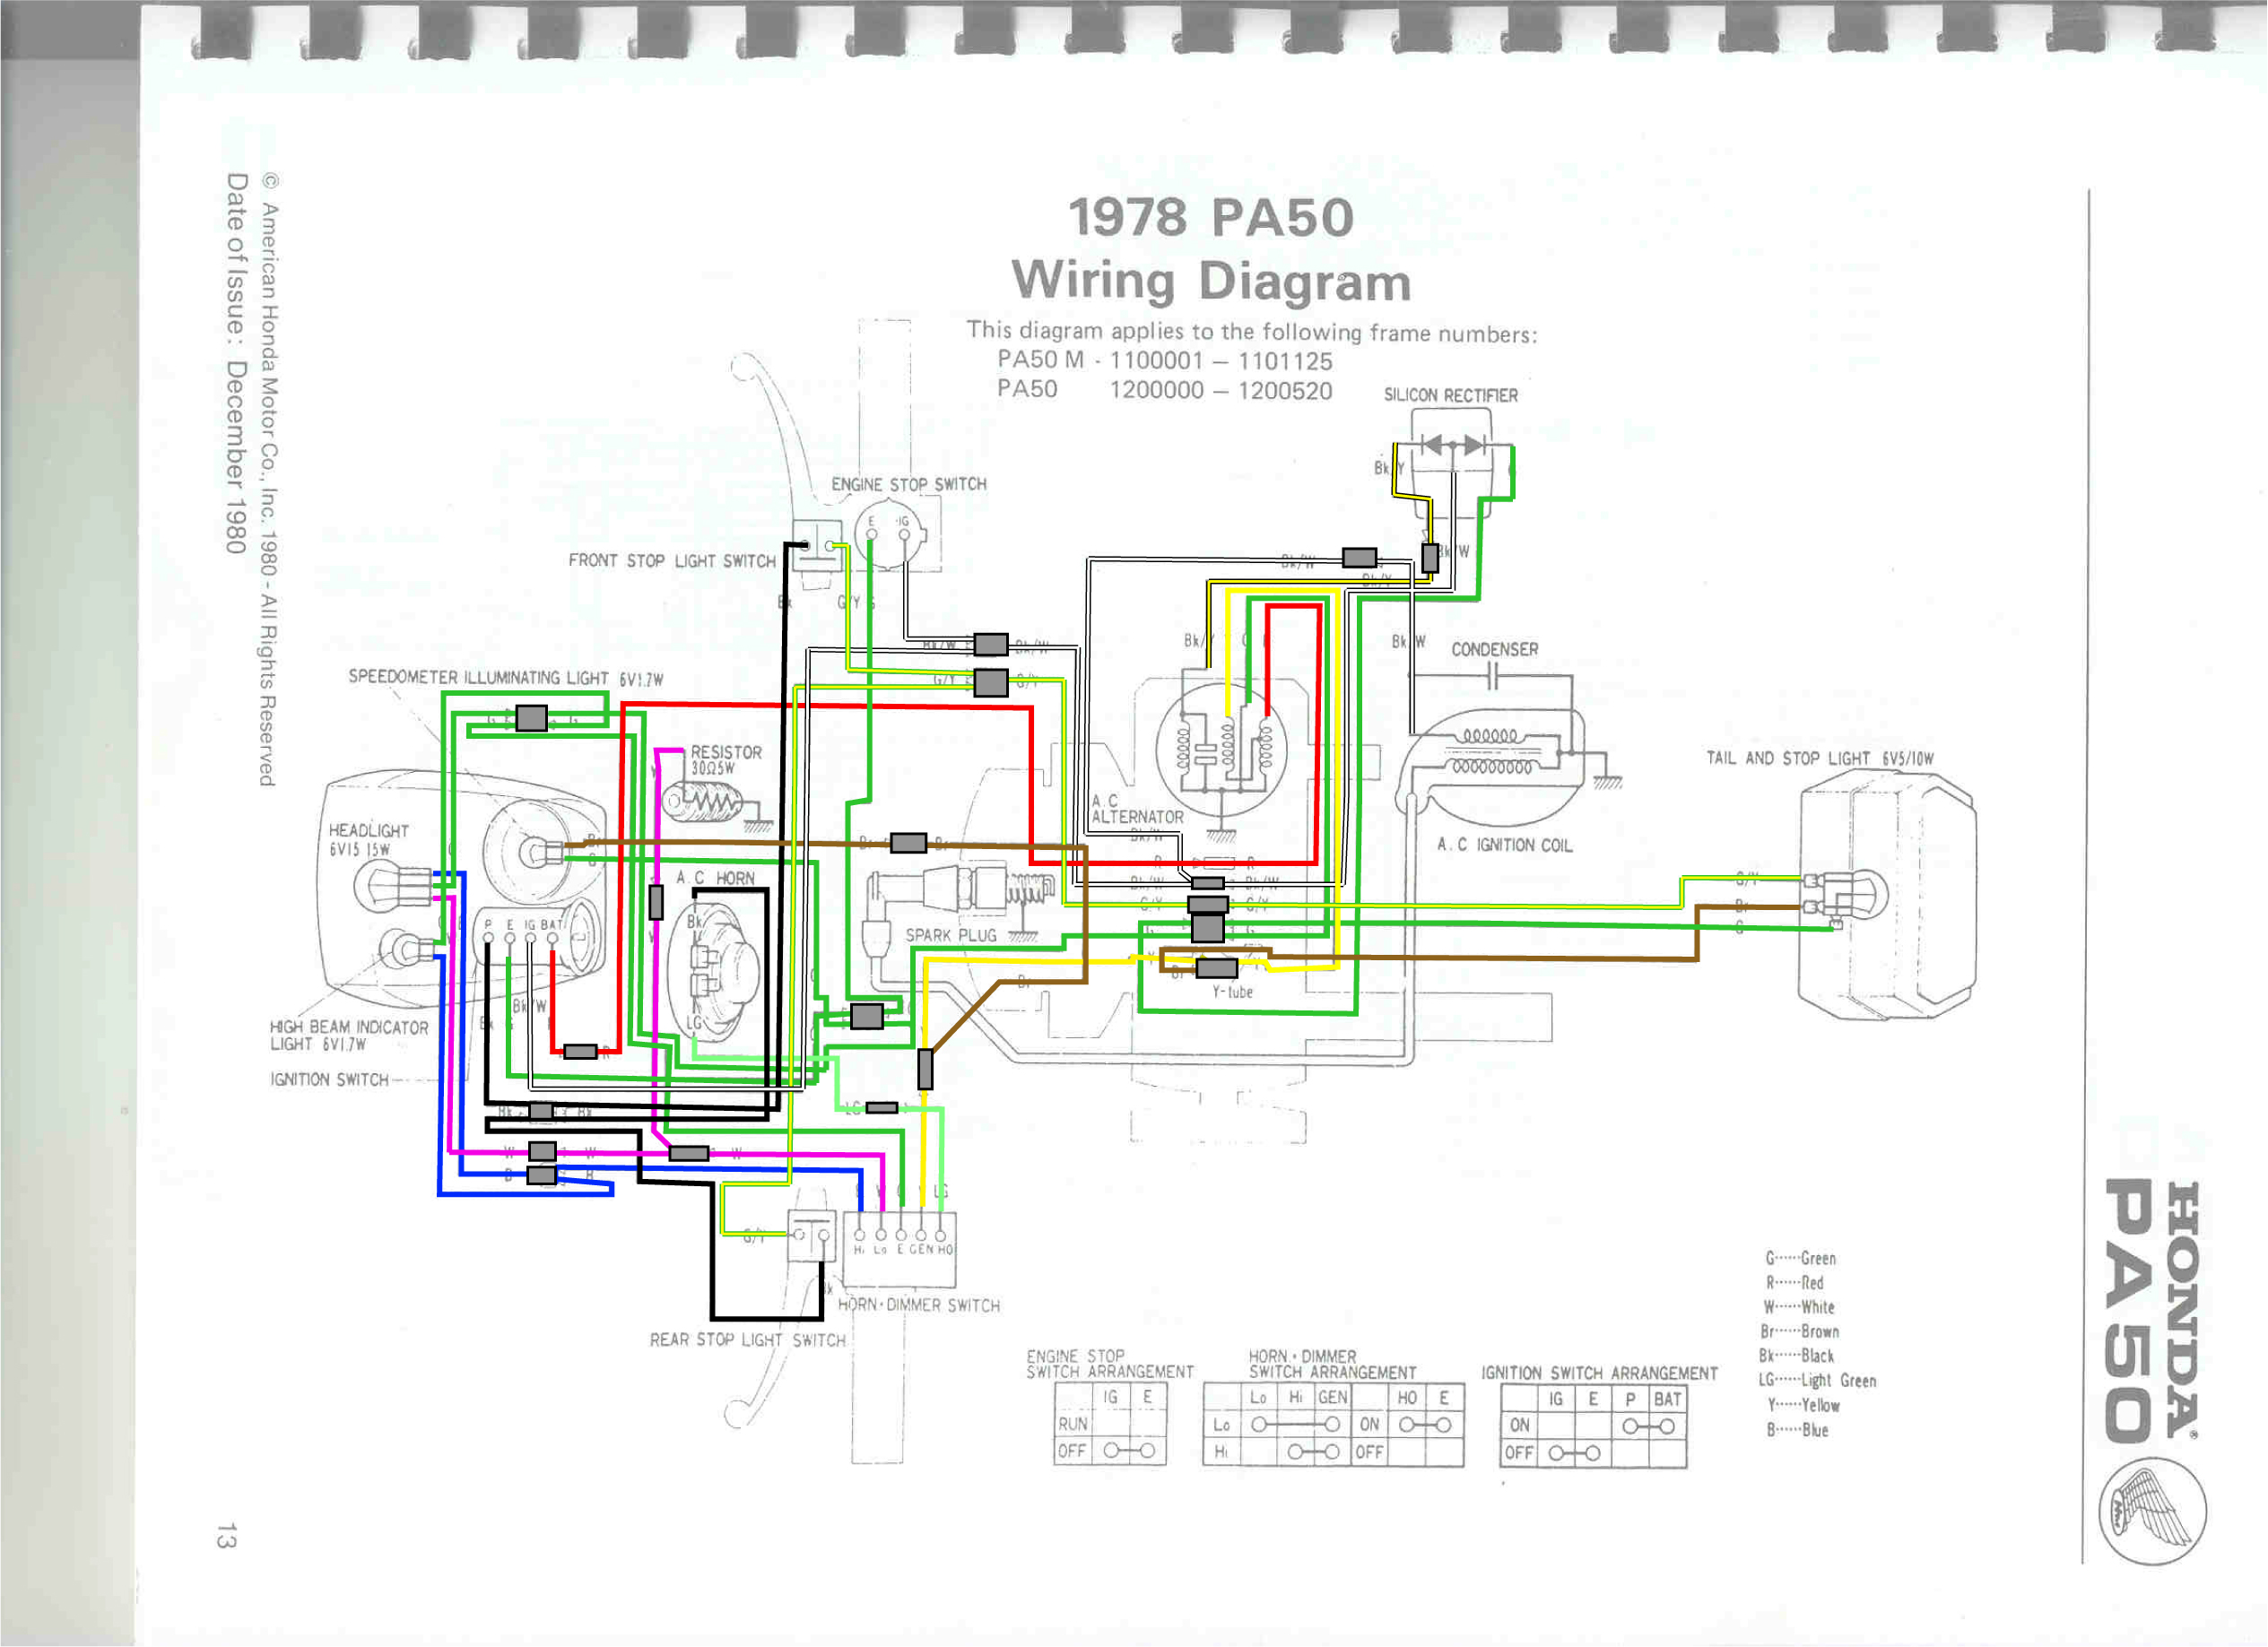 Wiring Diagram Honda Scooter : Honda hobbit moped cdi wiring diagram get free